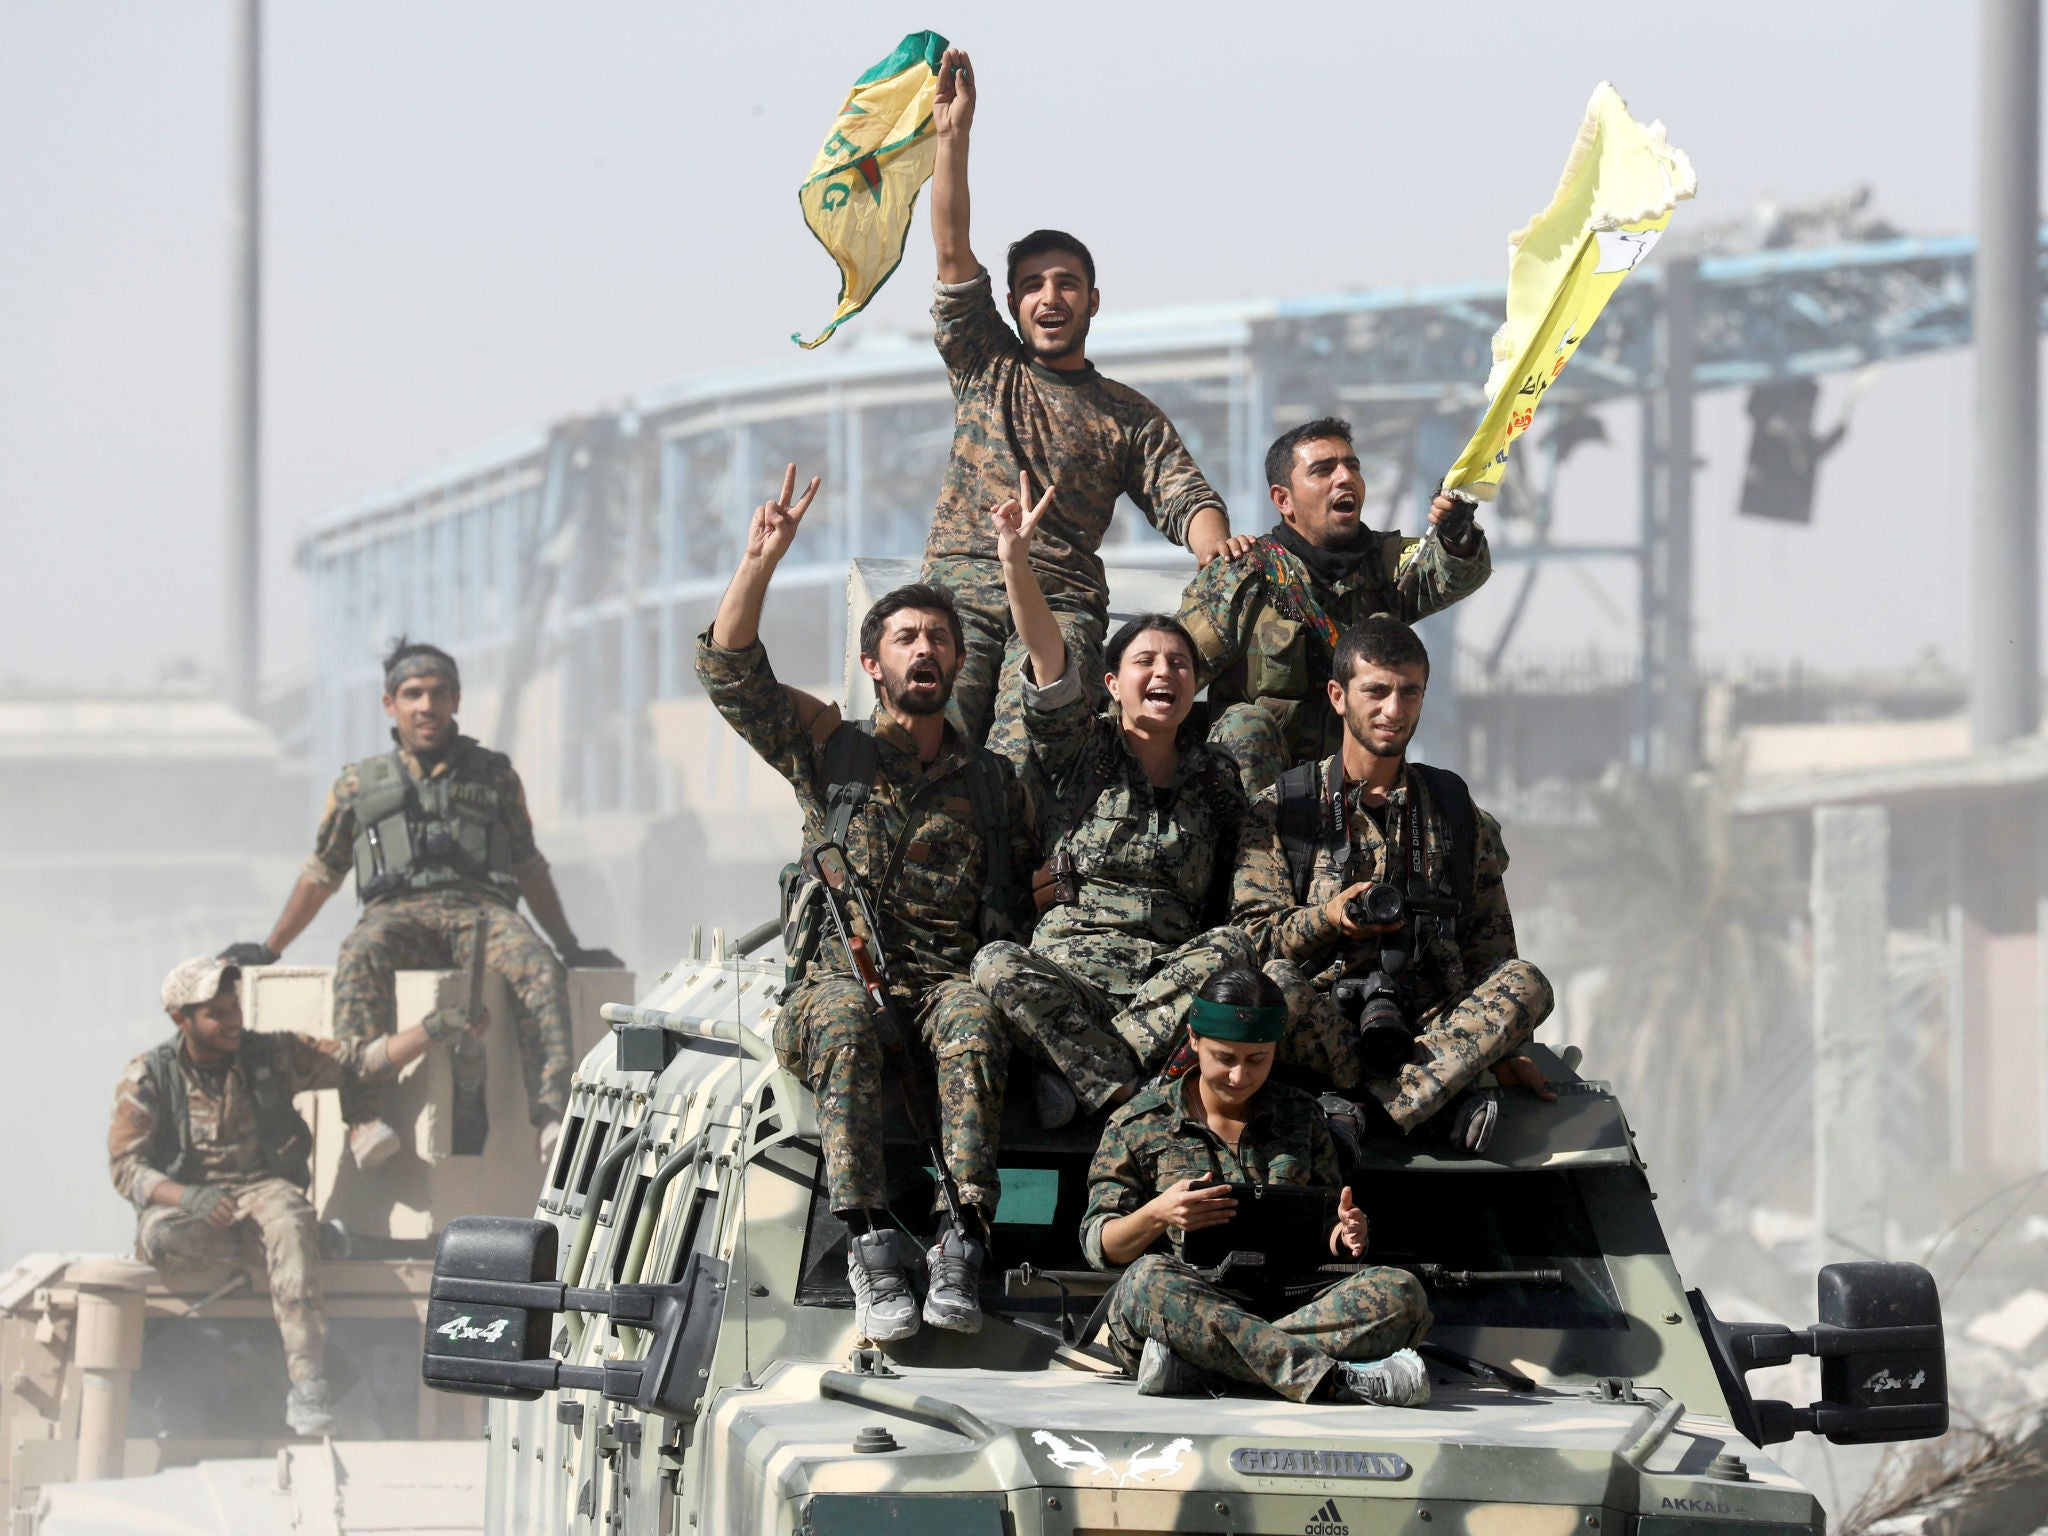 Image result for We suffered in Raqqa. Hundreds of good men & women died fighting ISIS.